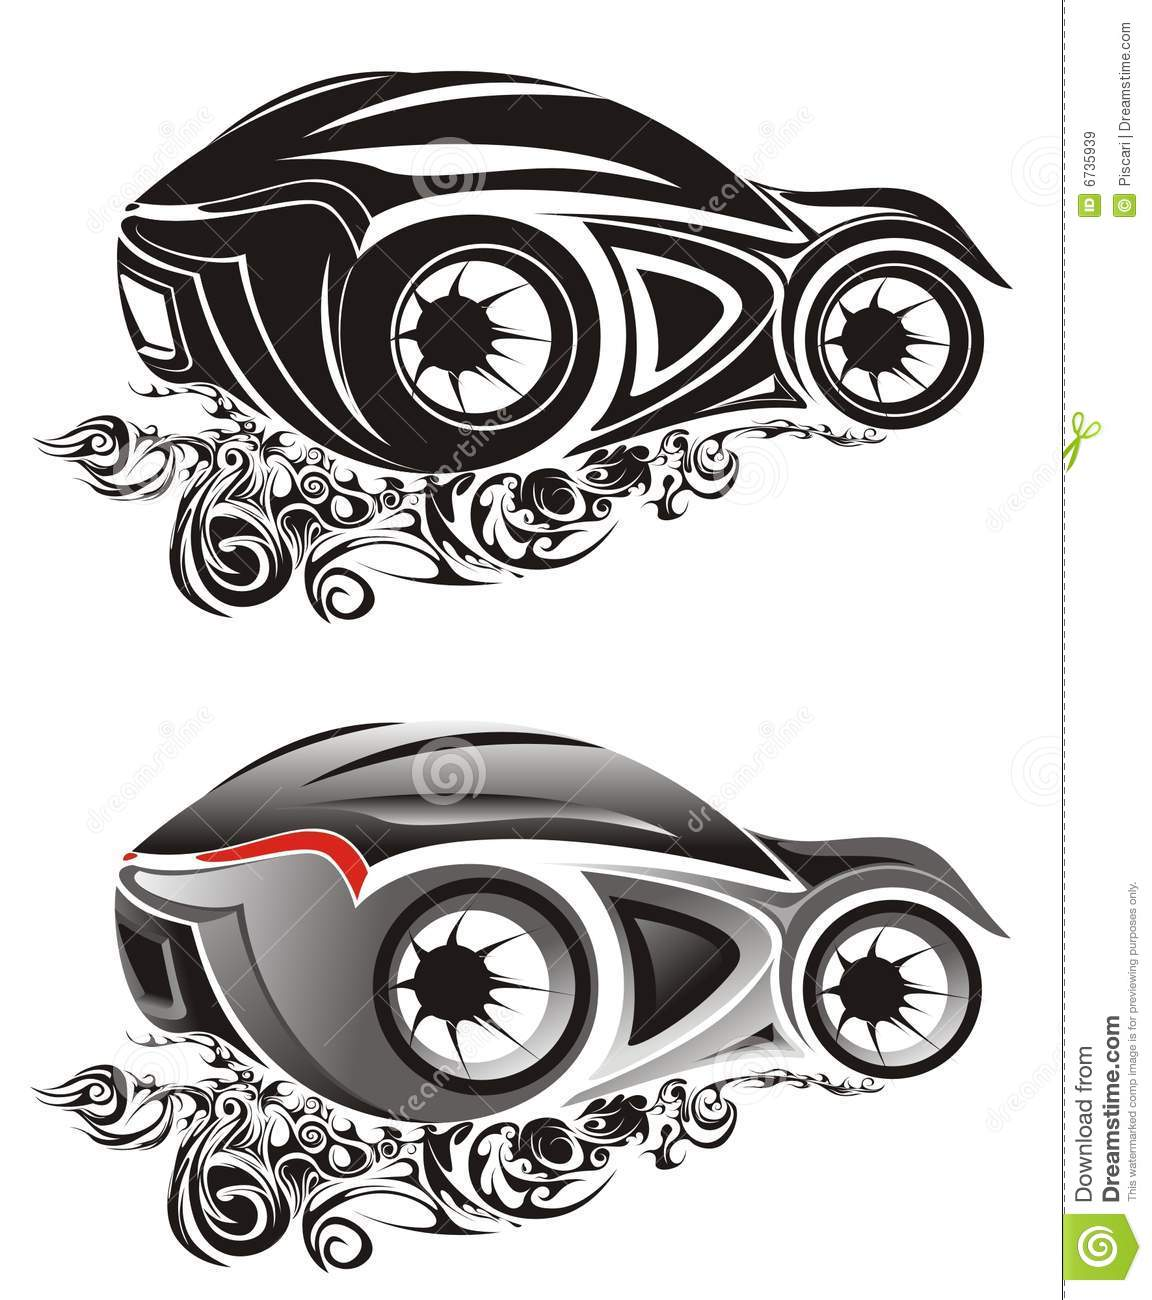 Abstract sports car drawings